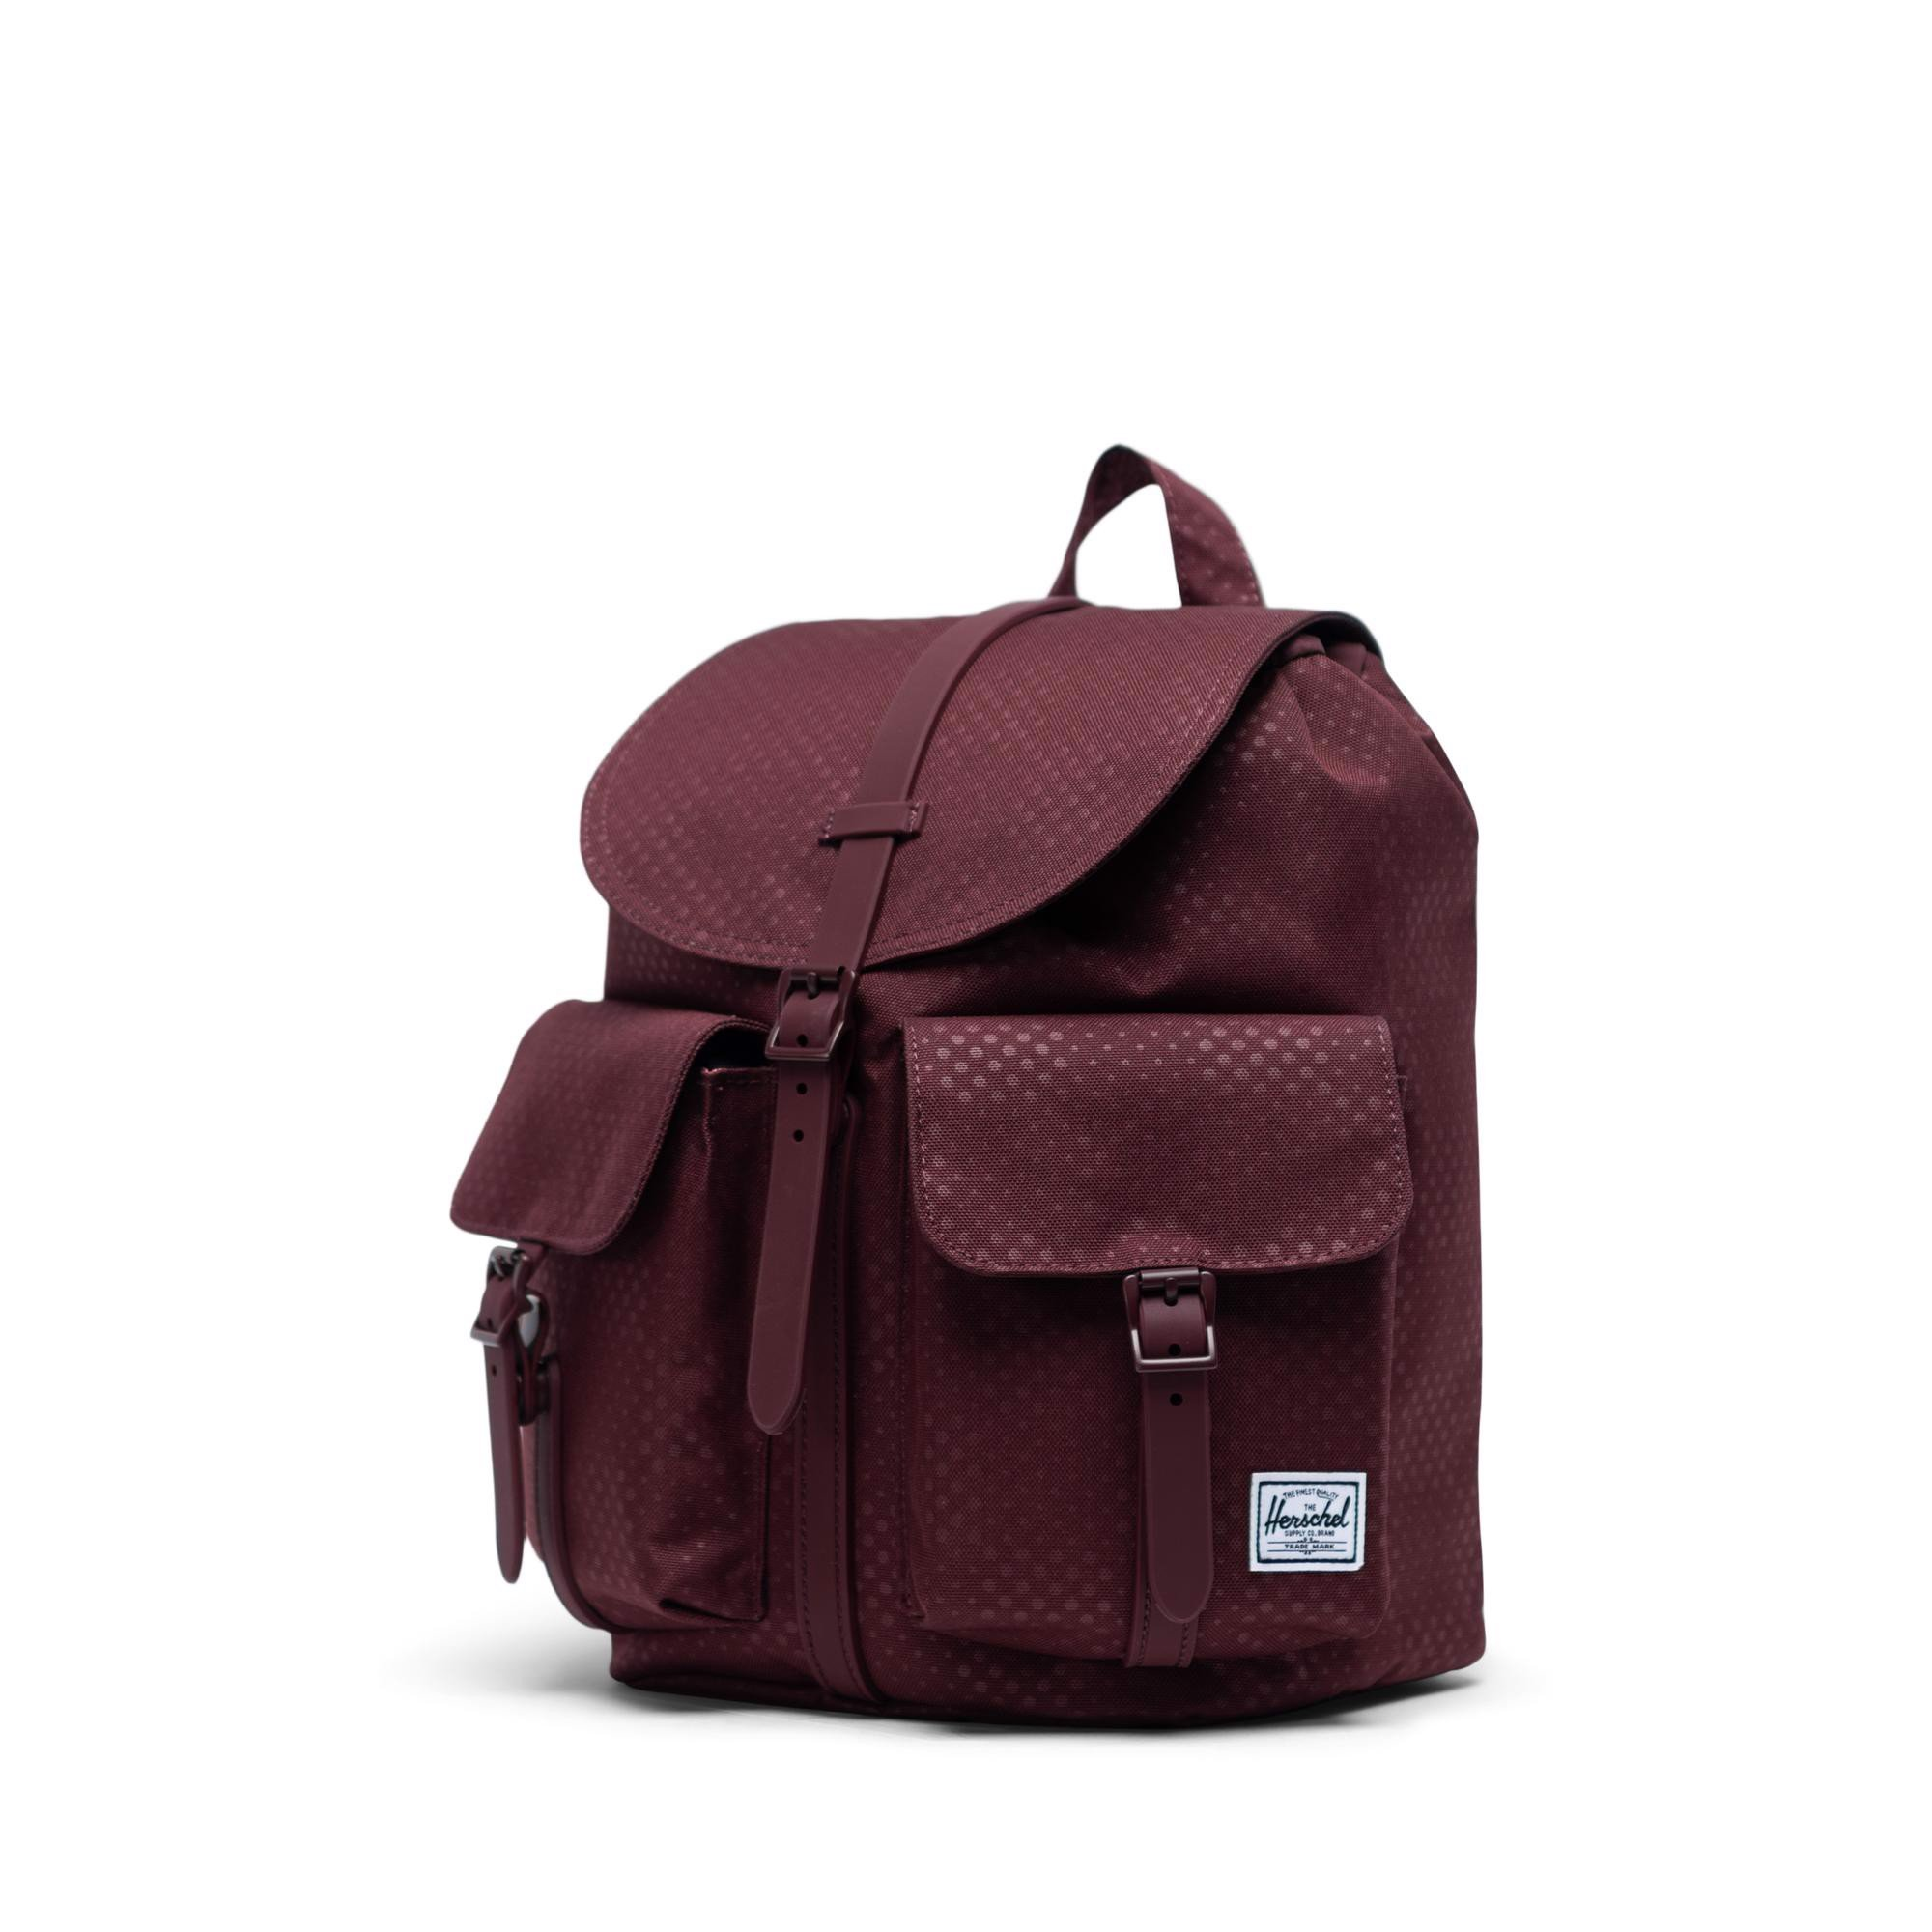 Herschel Dawson Small - Plum Dot Check